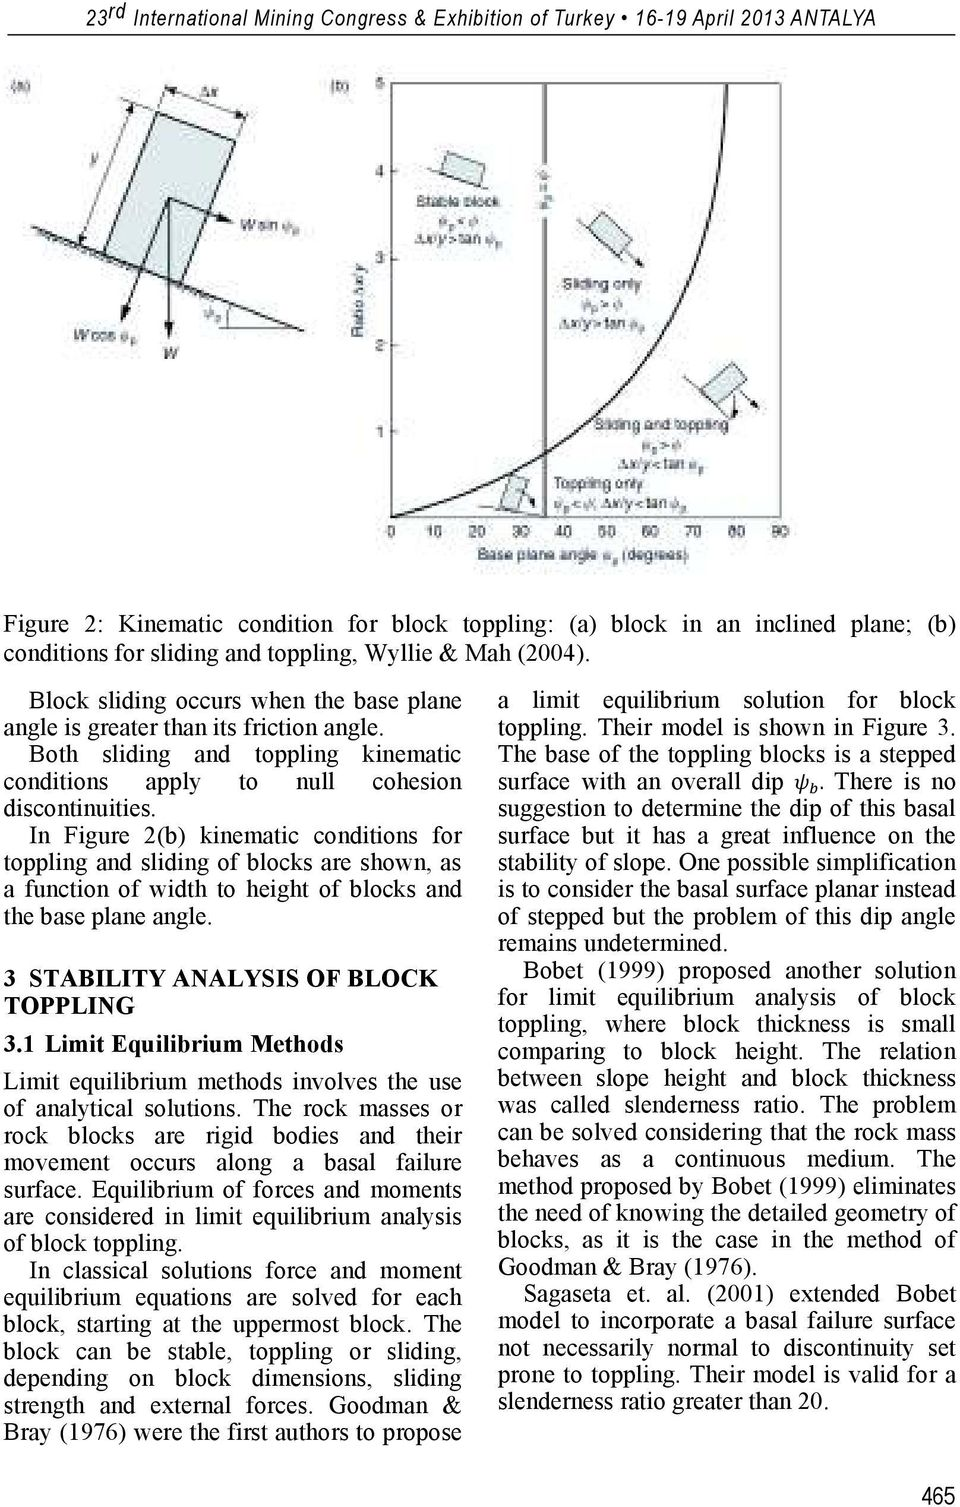 In Figure 2(b) kinematic conditions for toppling and sliding of blocks are shown, as a function of width to height of blocks and the base plane angle. 3 STABILITY ANALYSIS OF BLOCK TOPPLING 3.